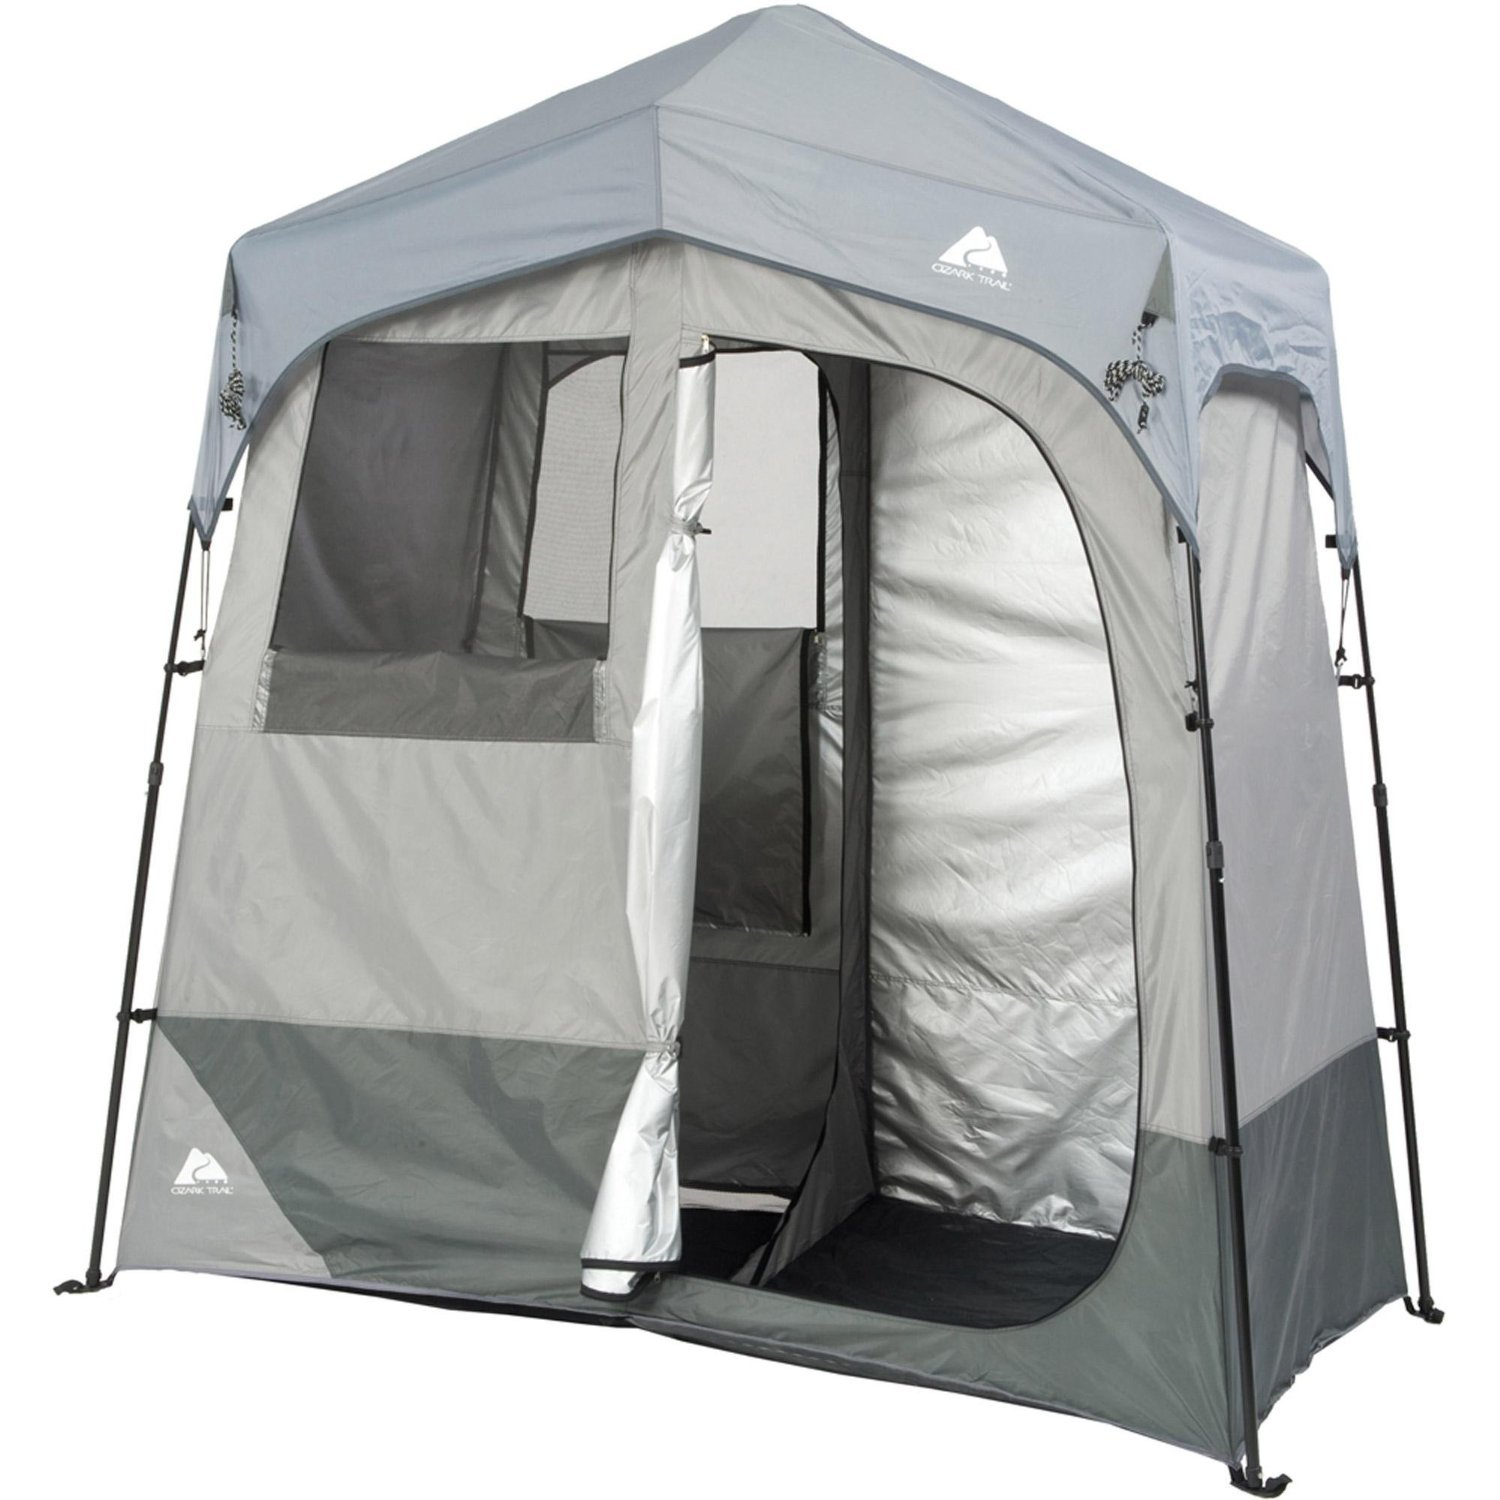 Best Camping Shower tent Reviews